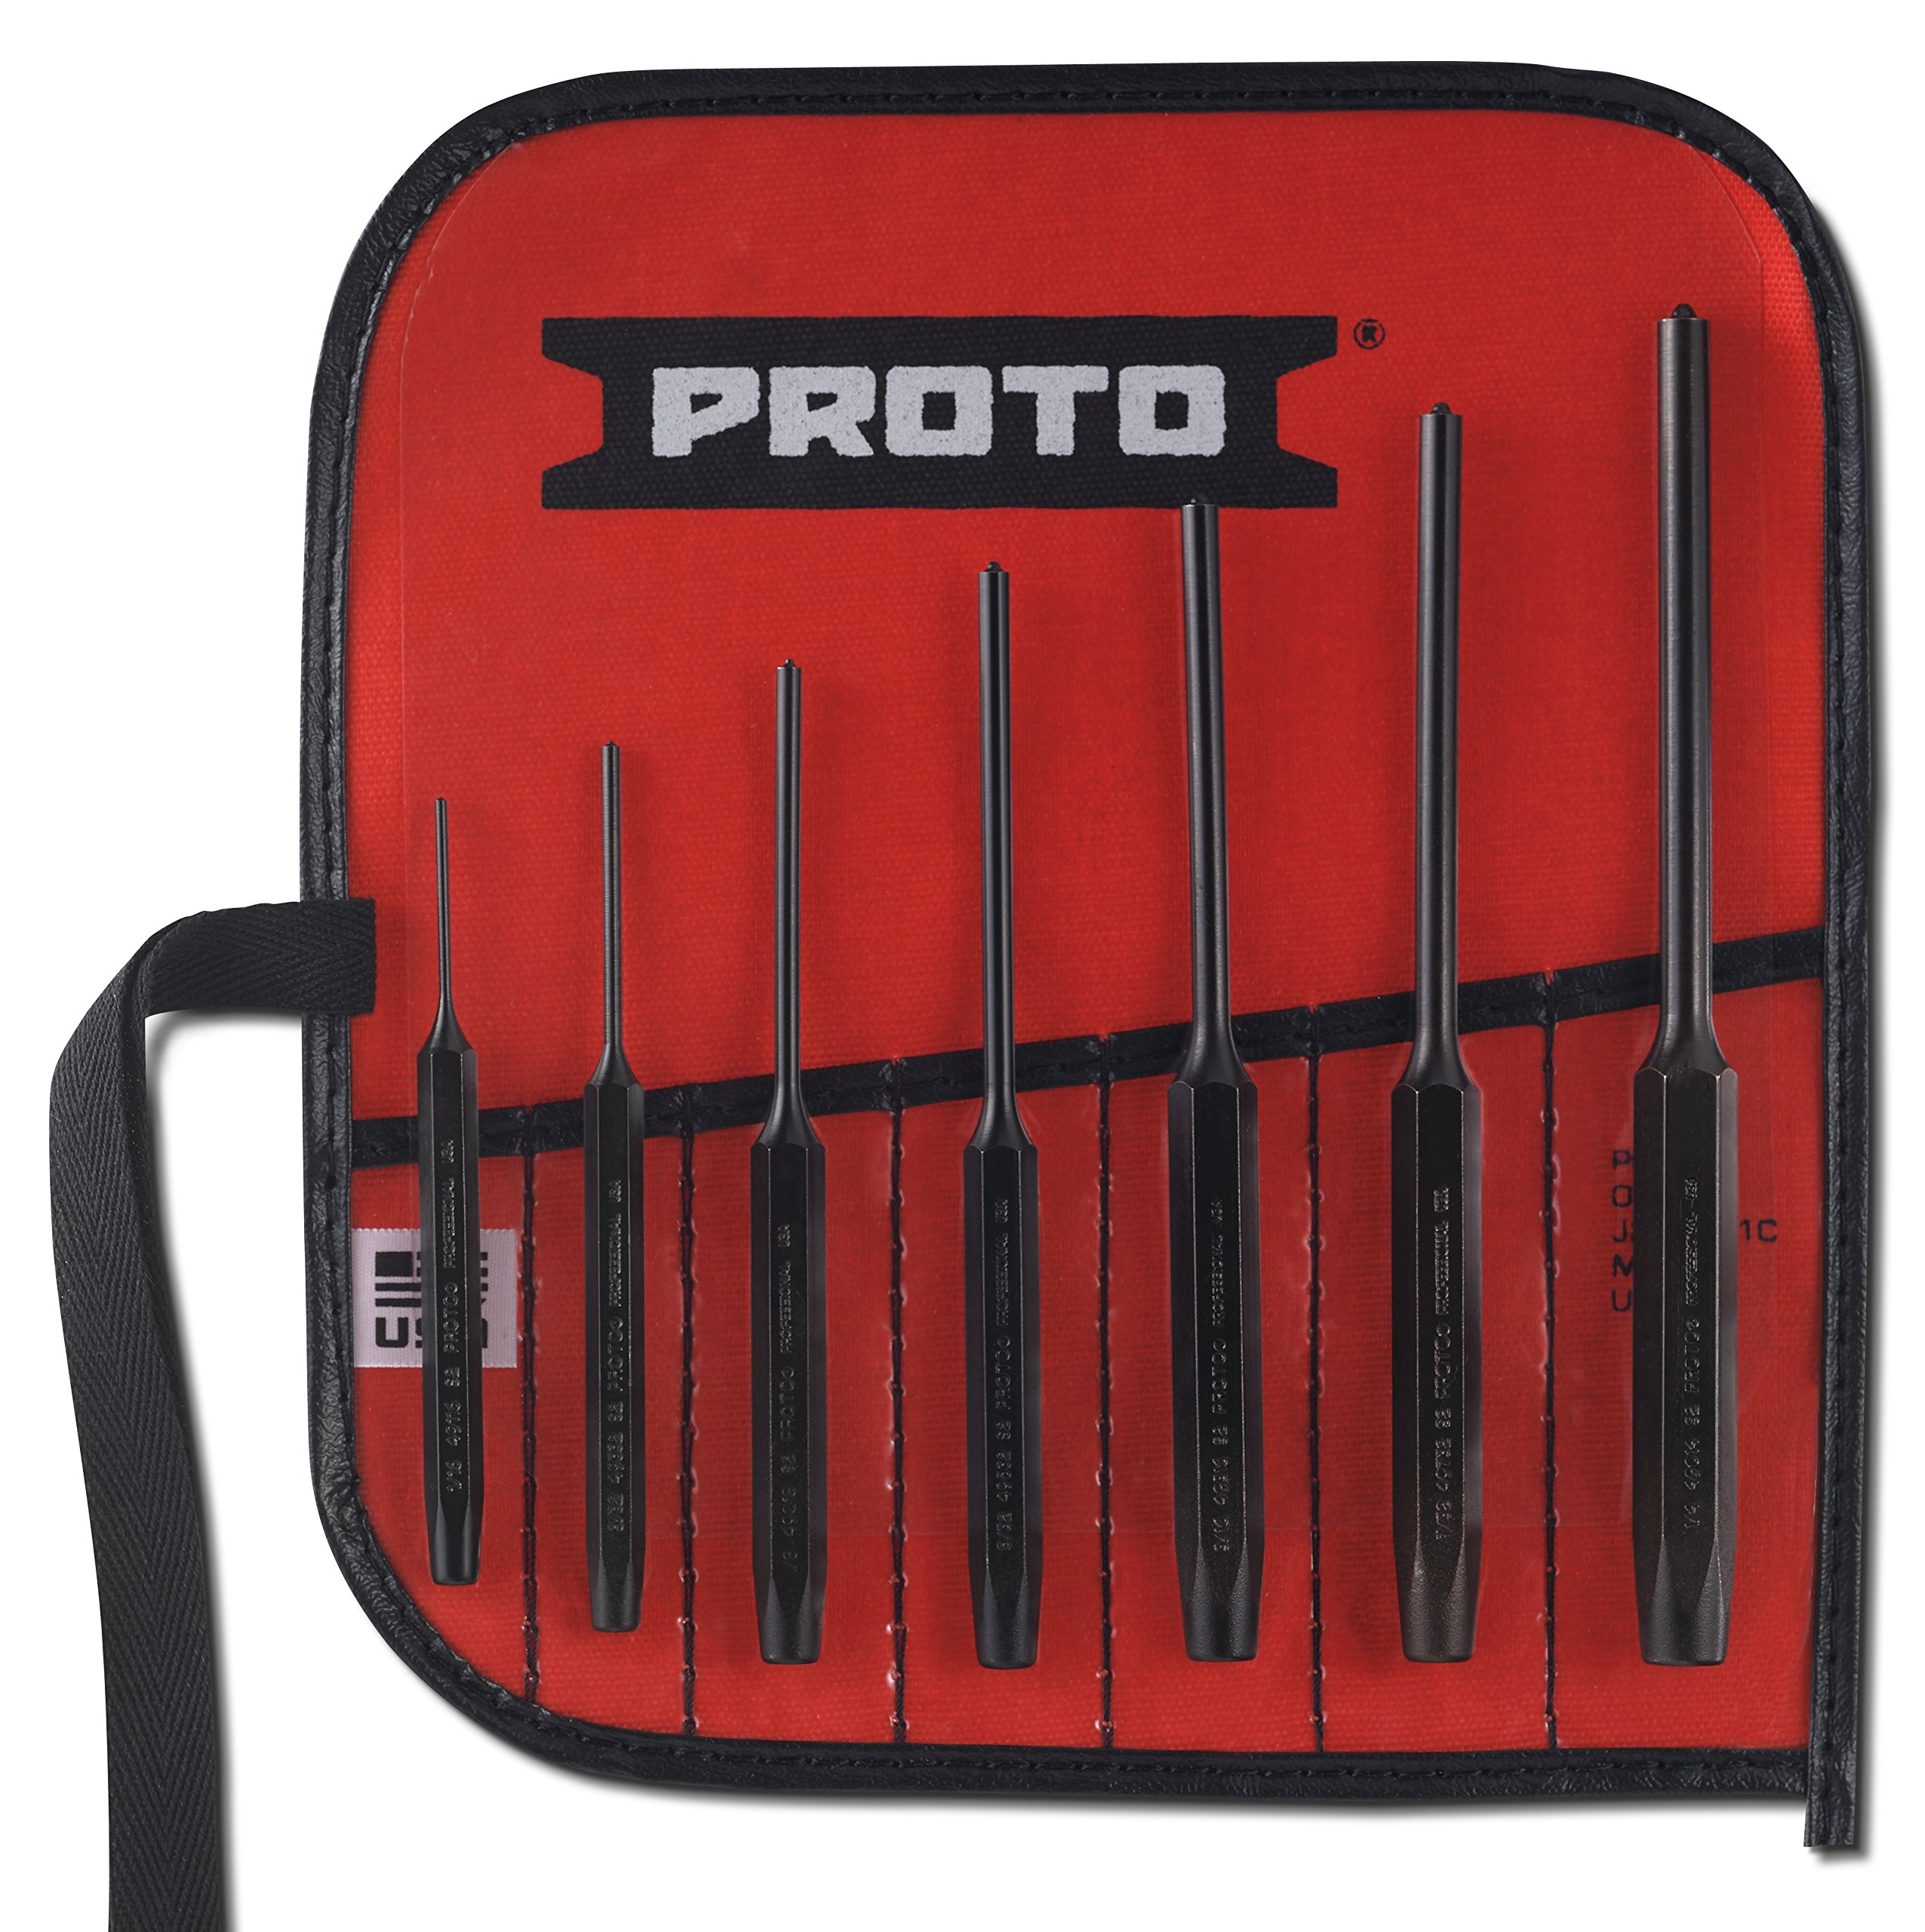 Stanley Proto J49007S2 Roll Pin Punch Set, 7PC by Proto